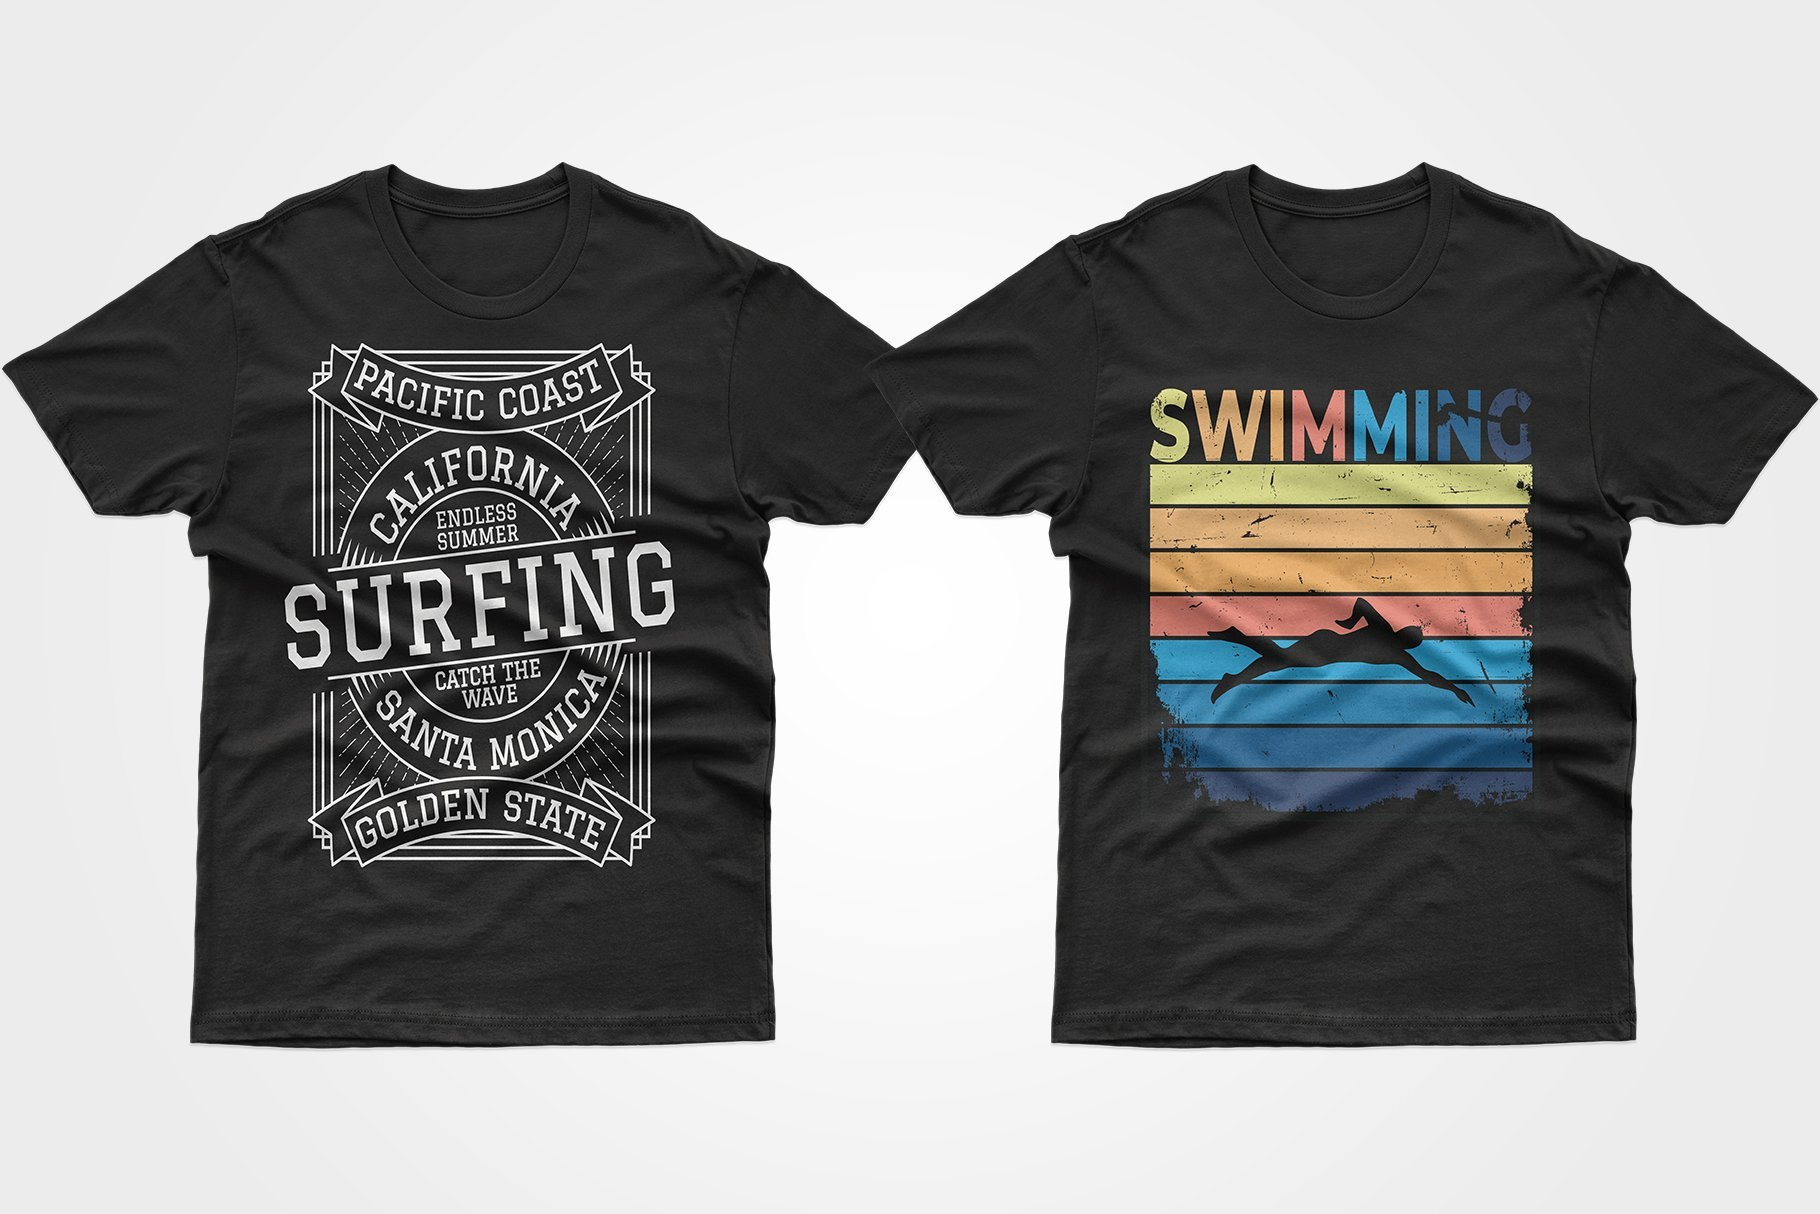 Two black T-shirts - one with a surfboard ad and one with a floating man.